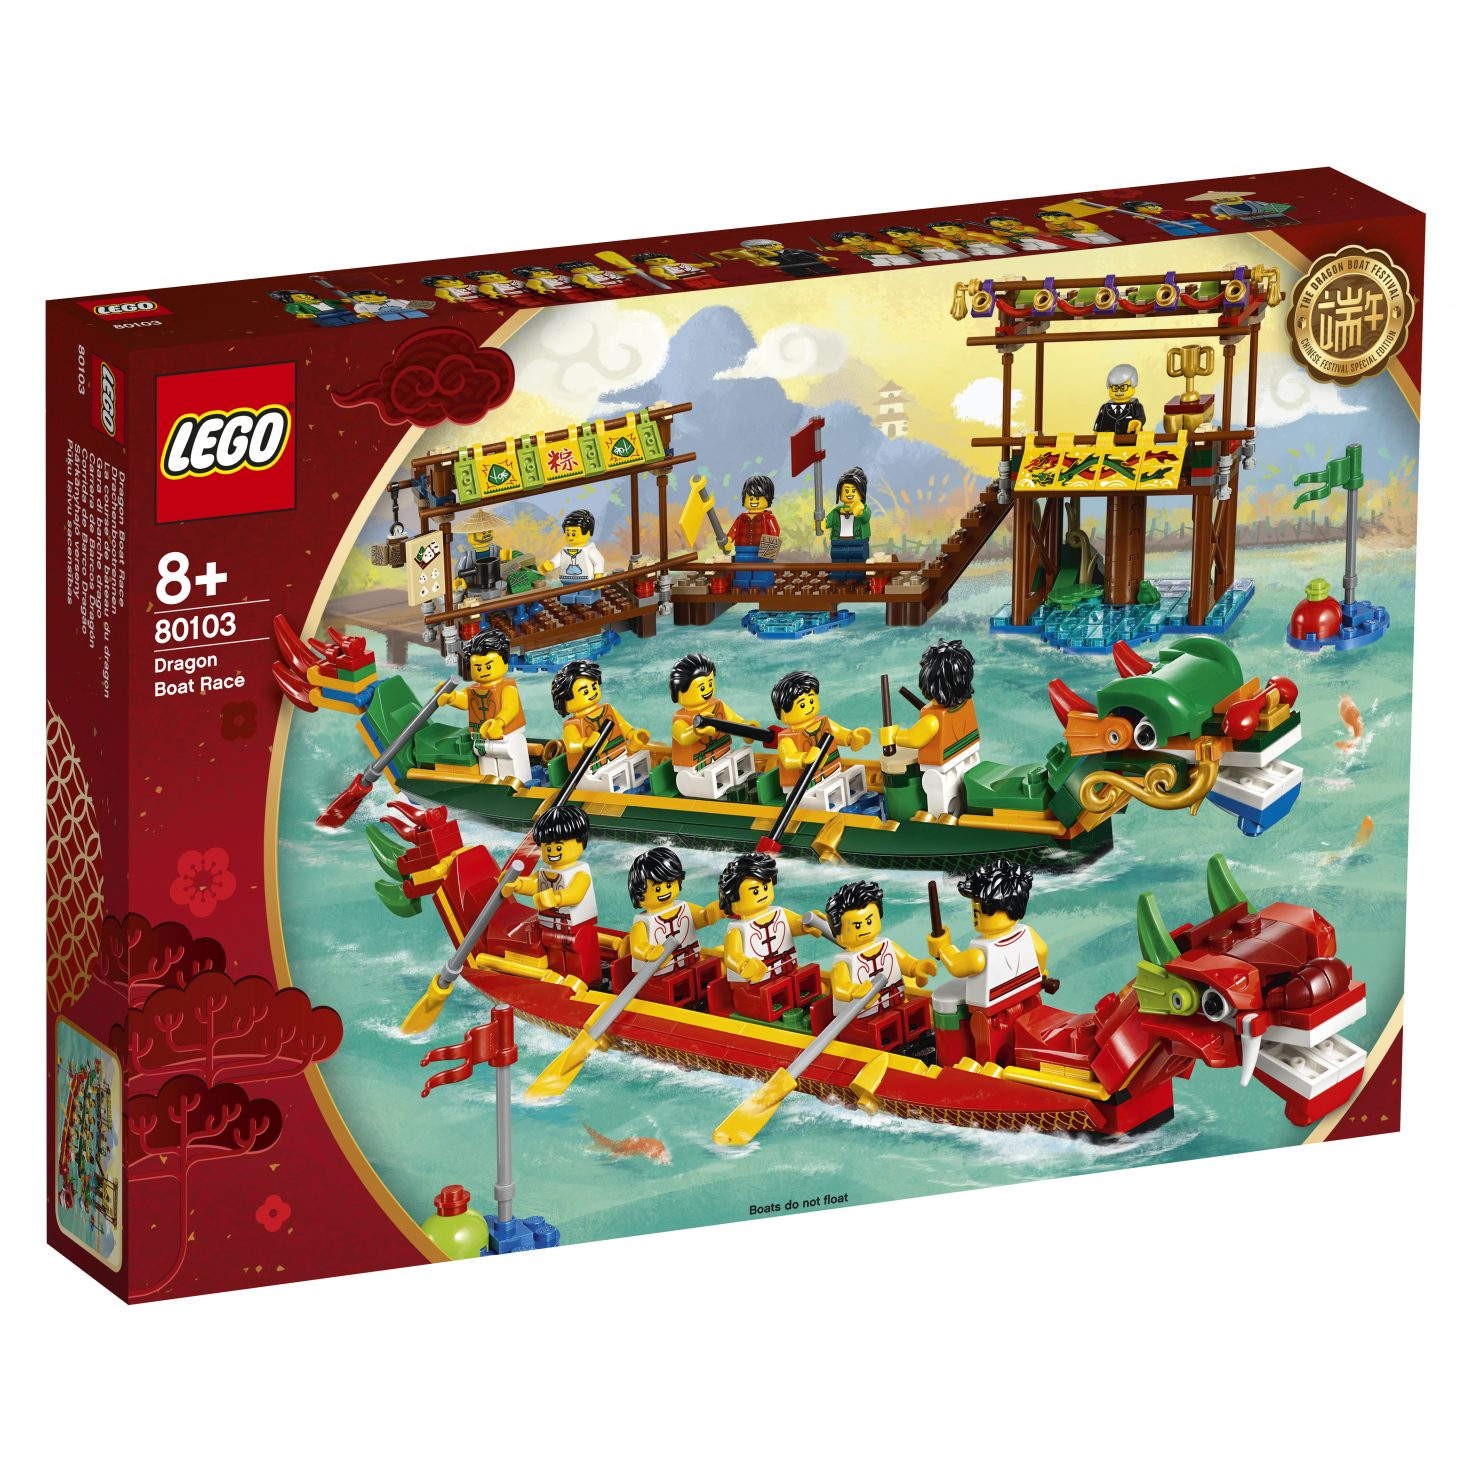 Review: LEGO 80103 Dragon Boat Race